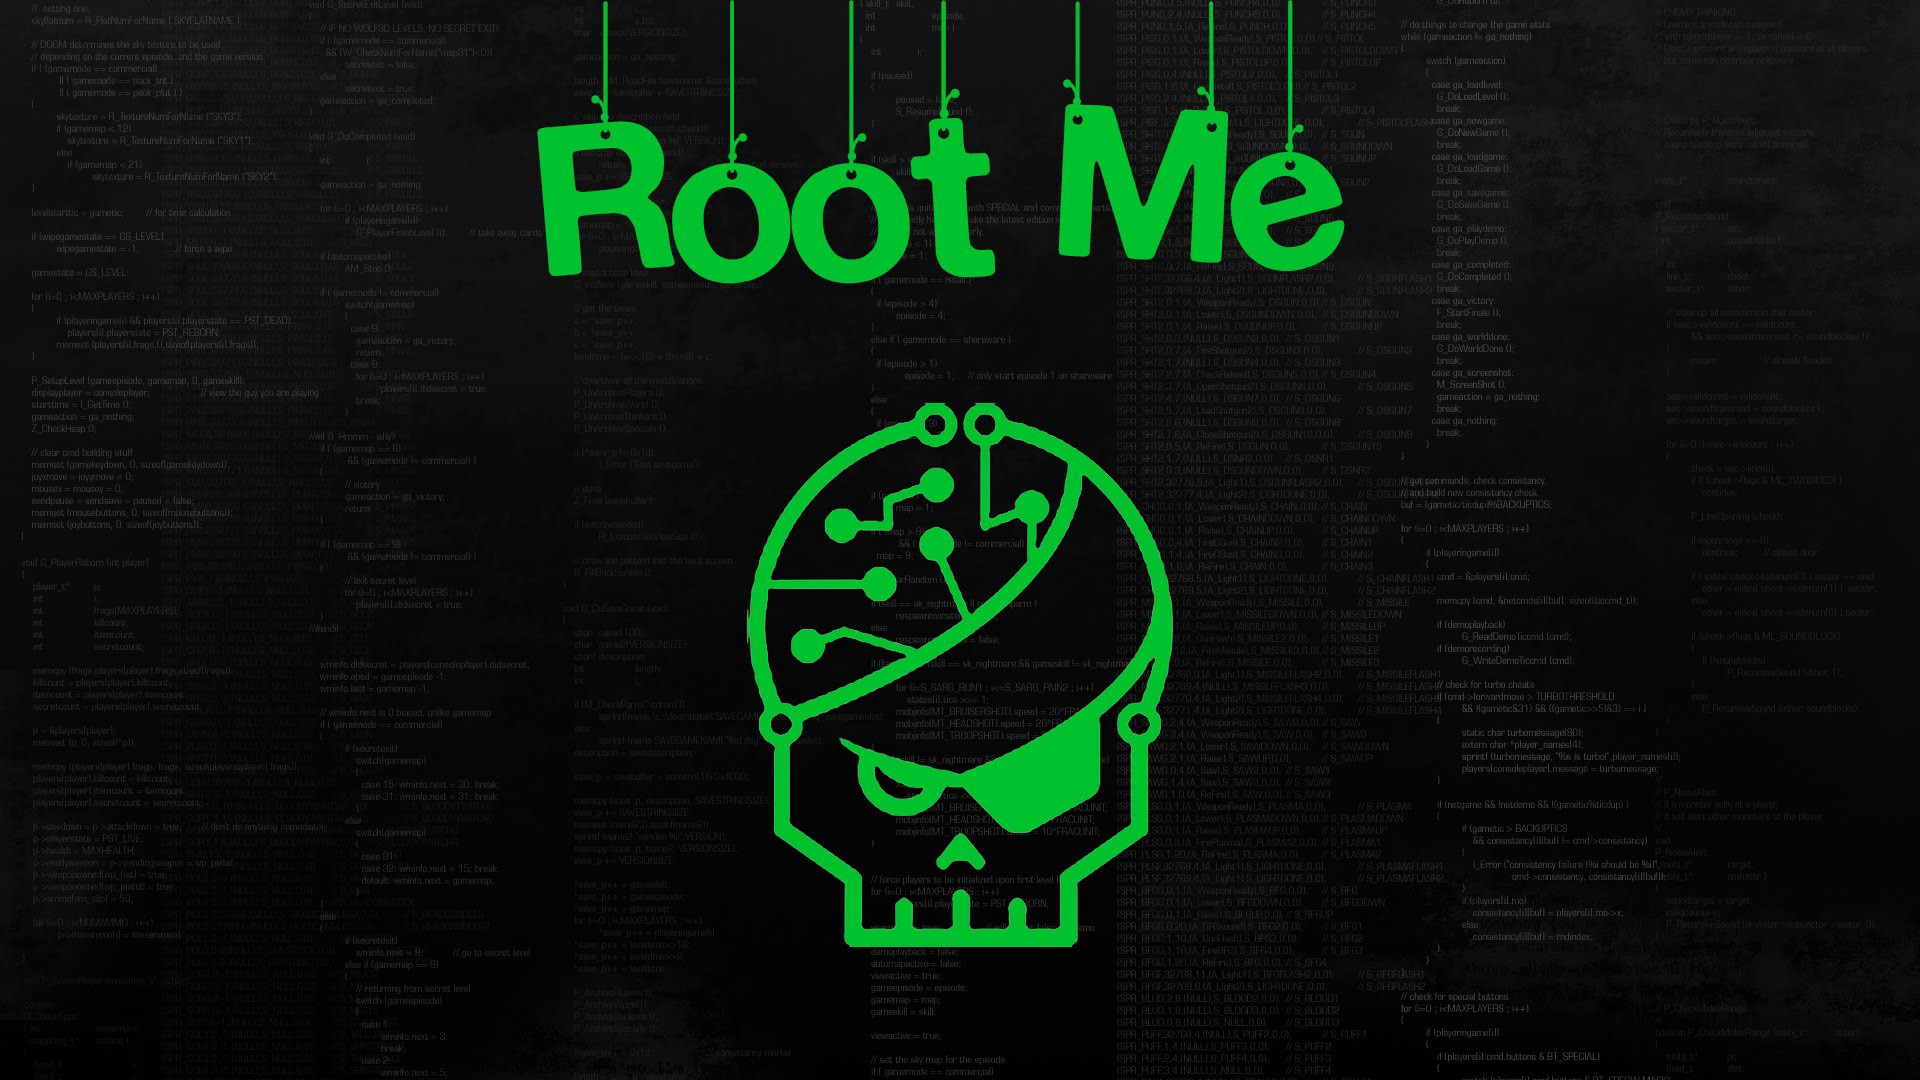 Quick analyzing root-me org's JS native code challenge